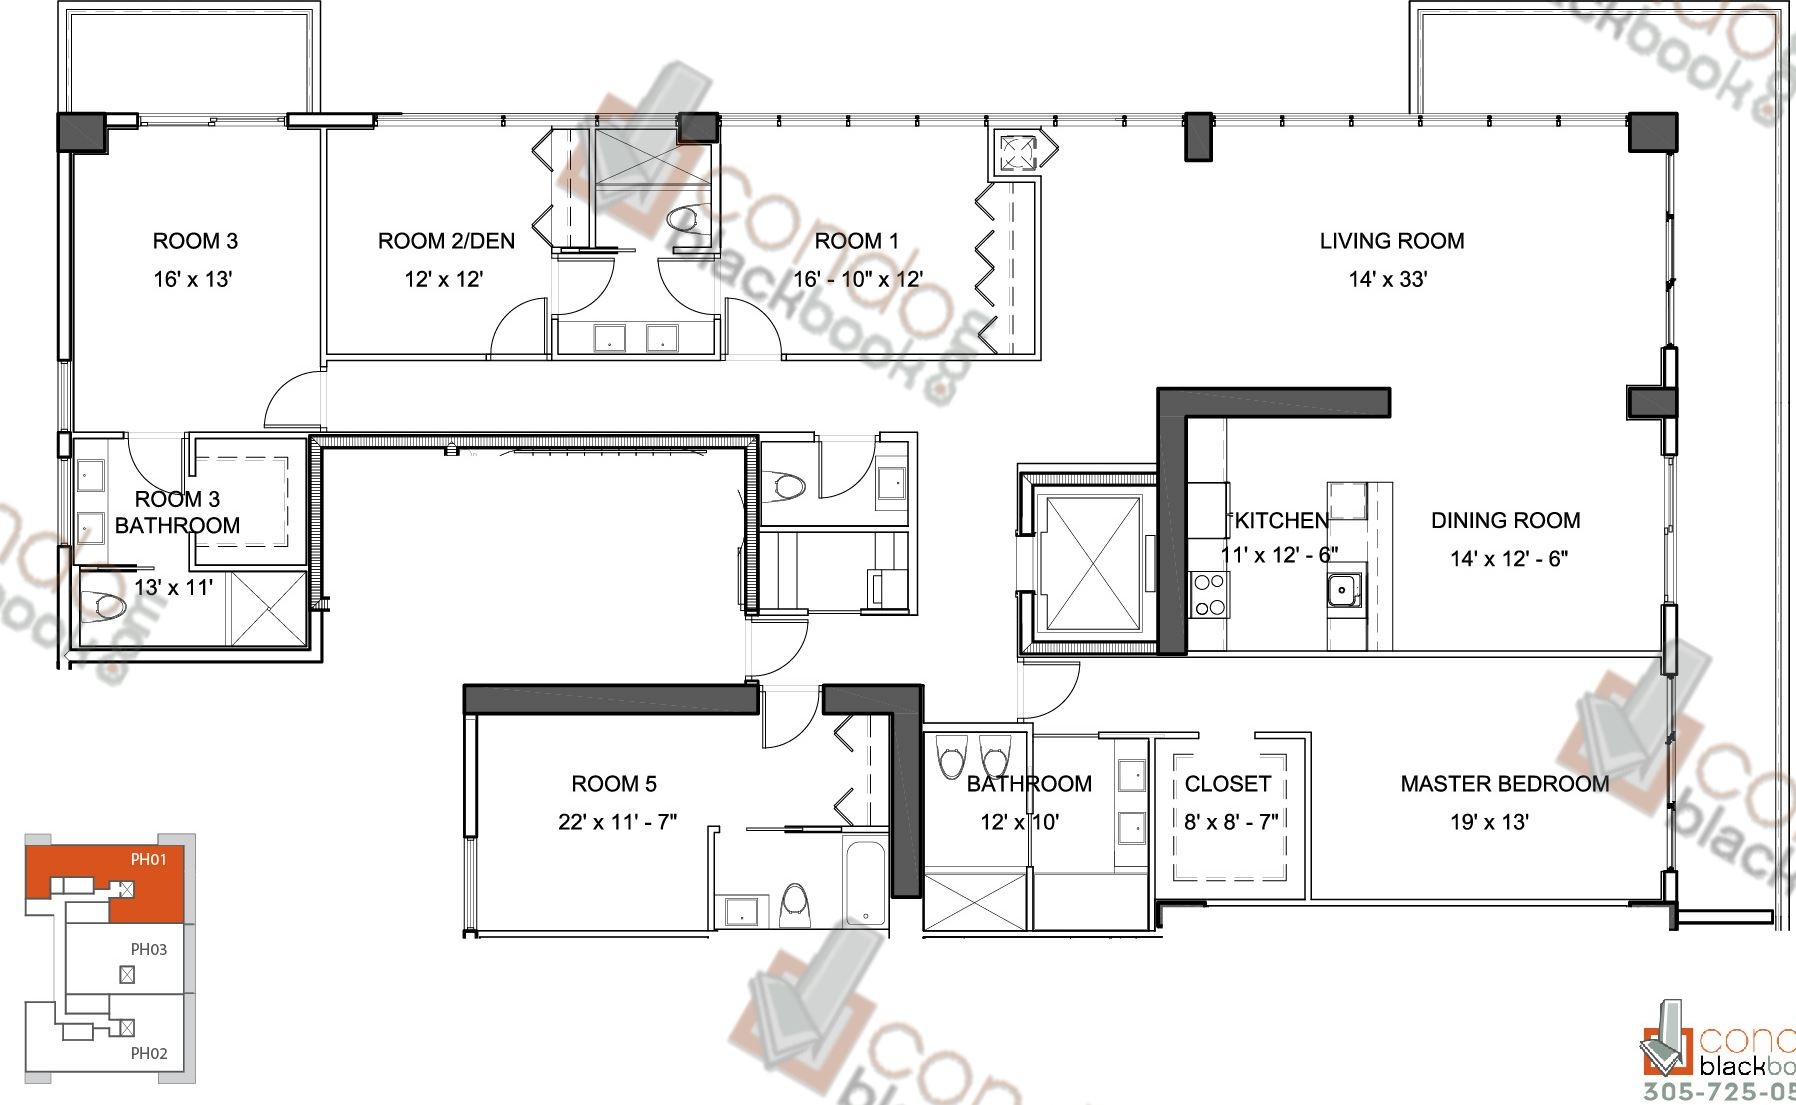 Edgewater house plan images home design and style for Miami house plans